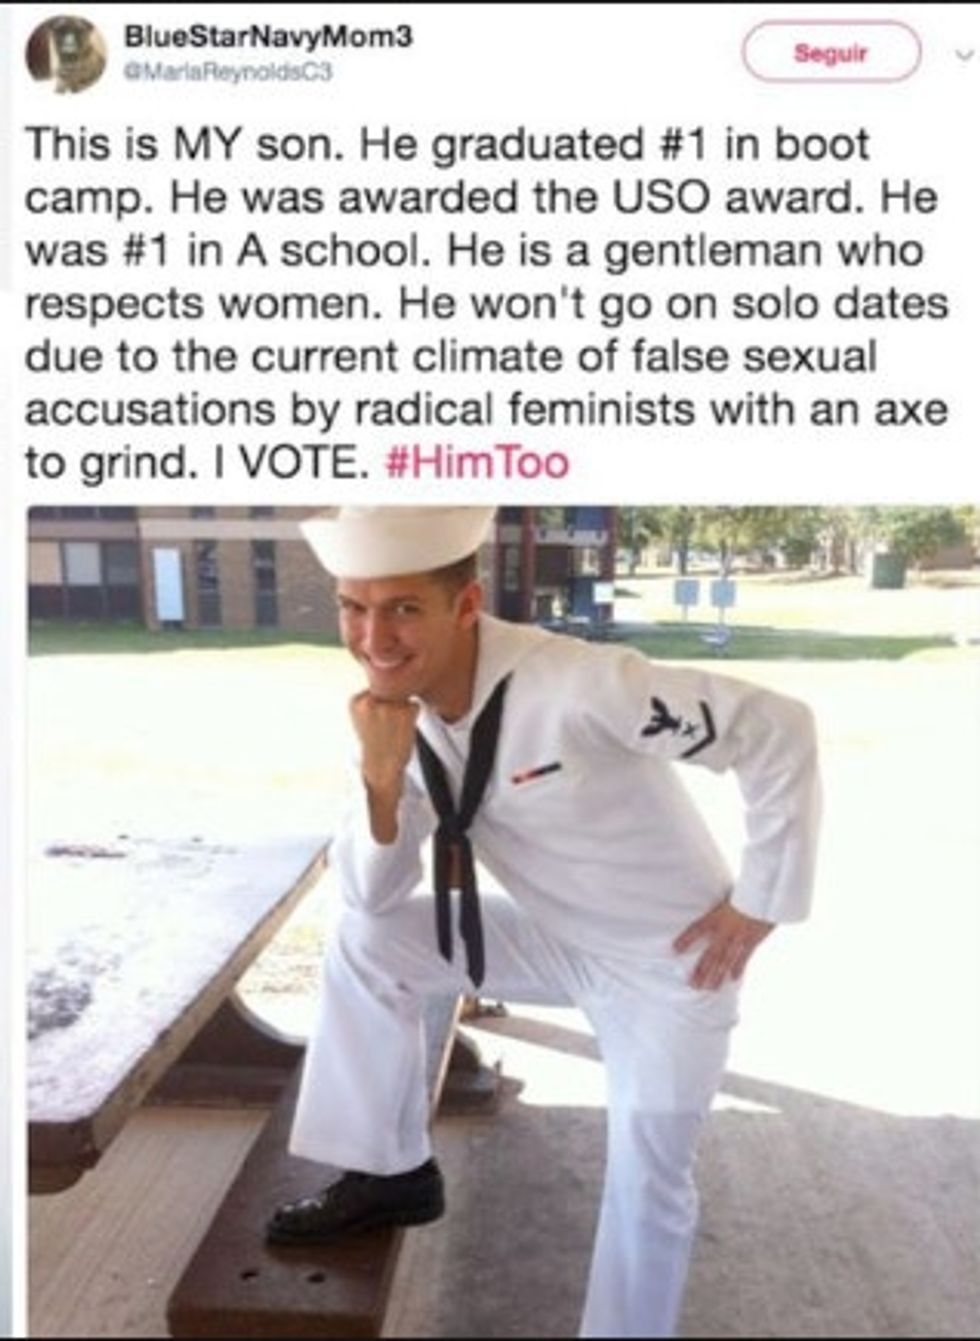 This vet surprised everyone after his Mom turned him into an accidental poster boy for the #HimToo movement.